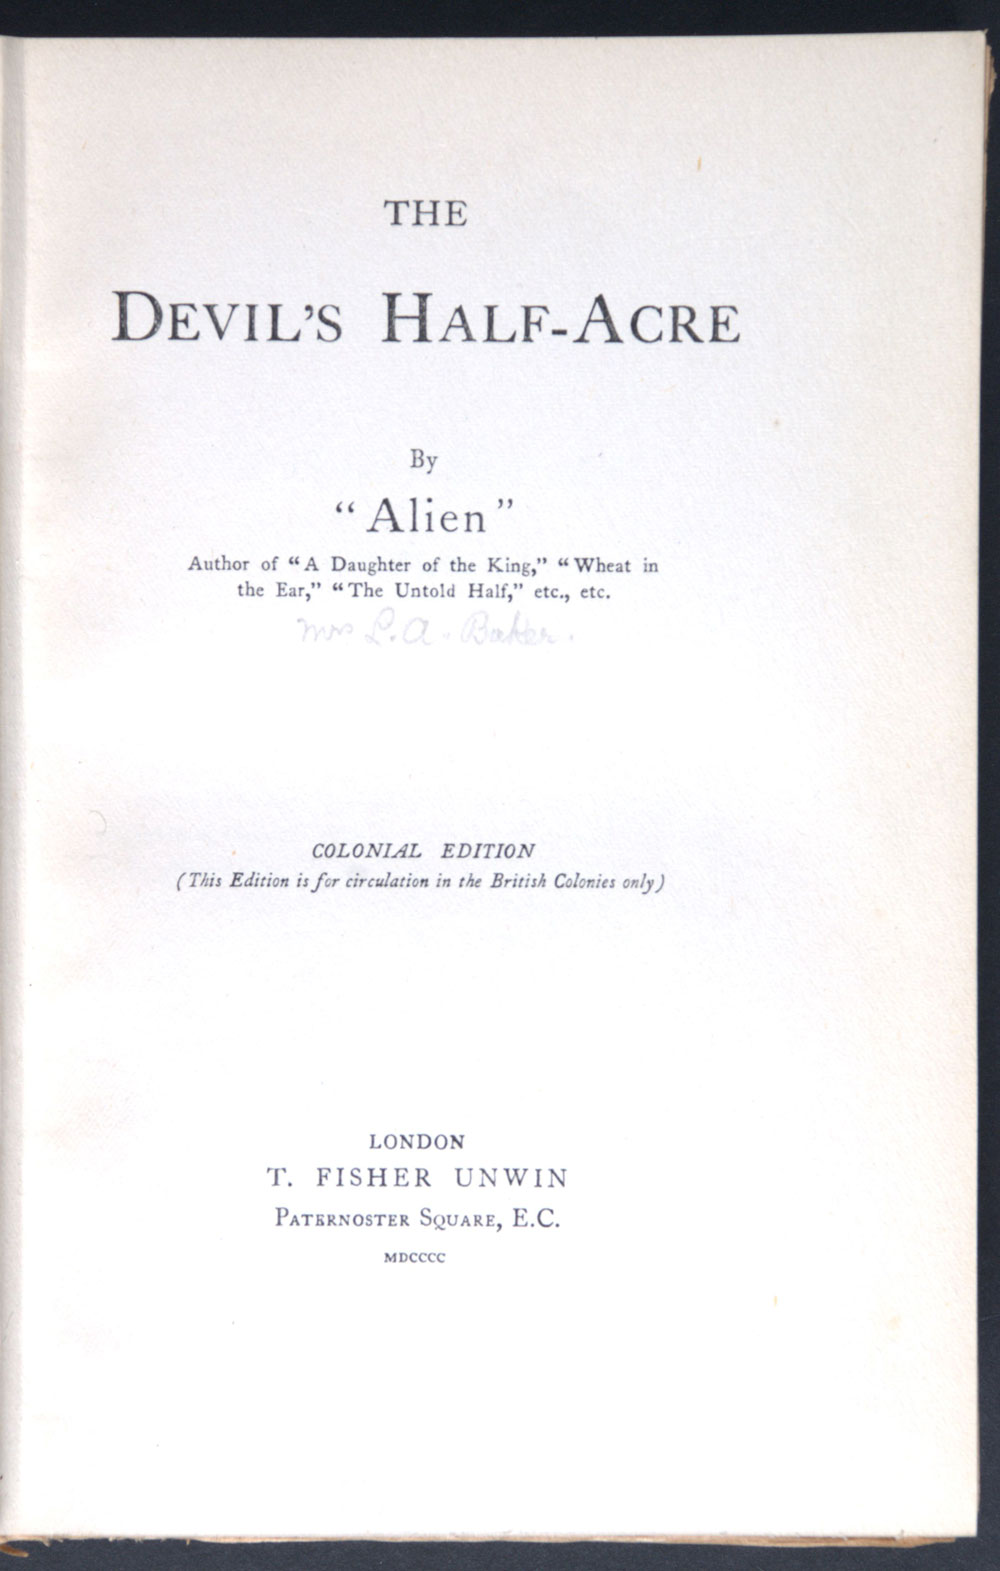 Alien. <em>The devil's half-acre.</em> London: T. Fisher Unwin, 1900.